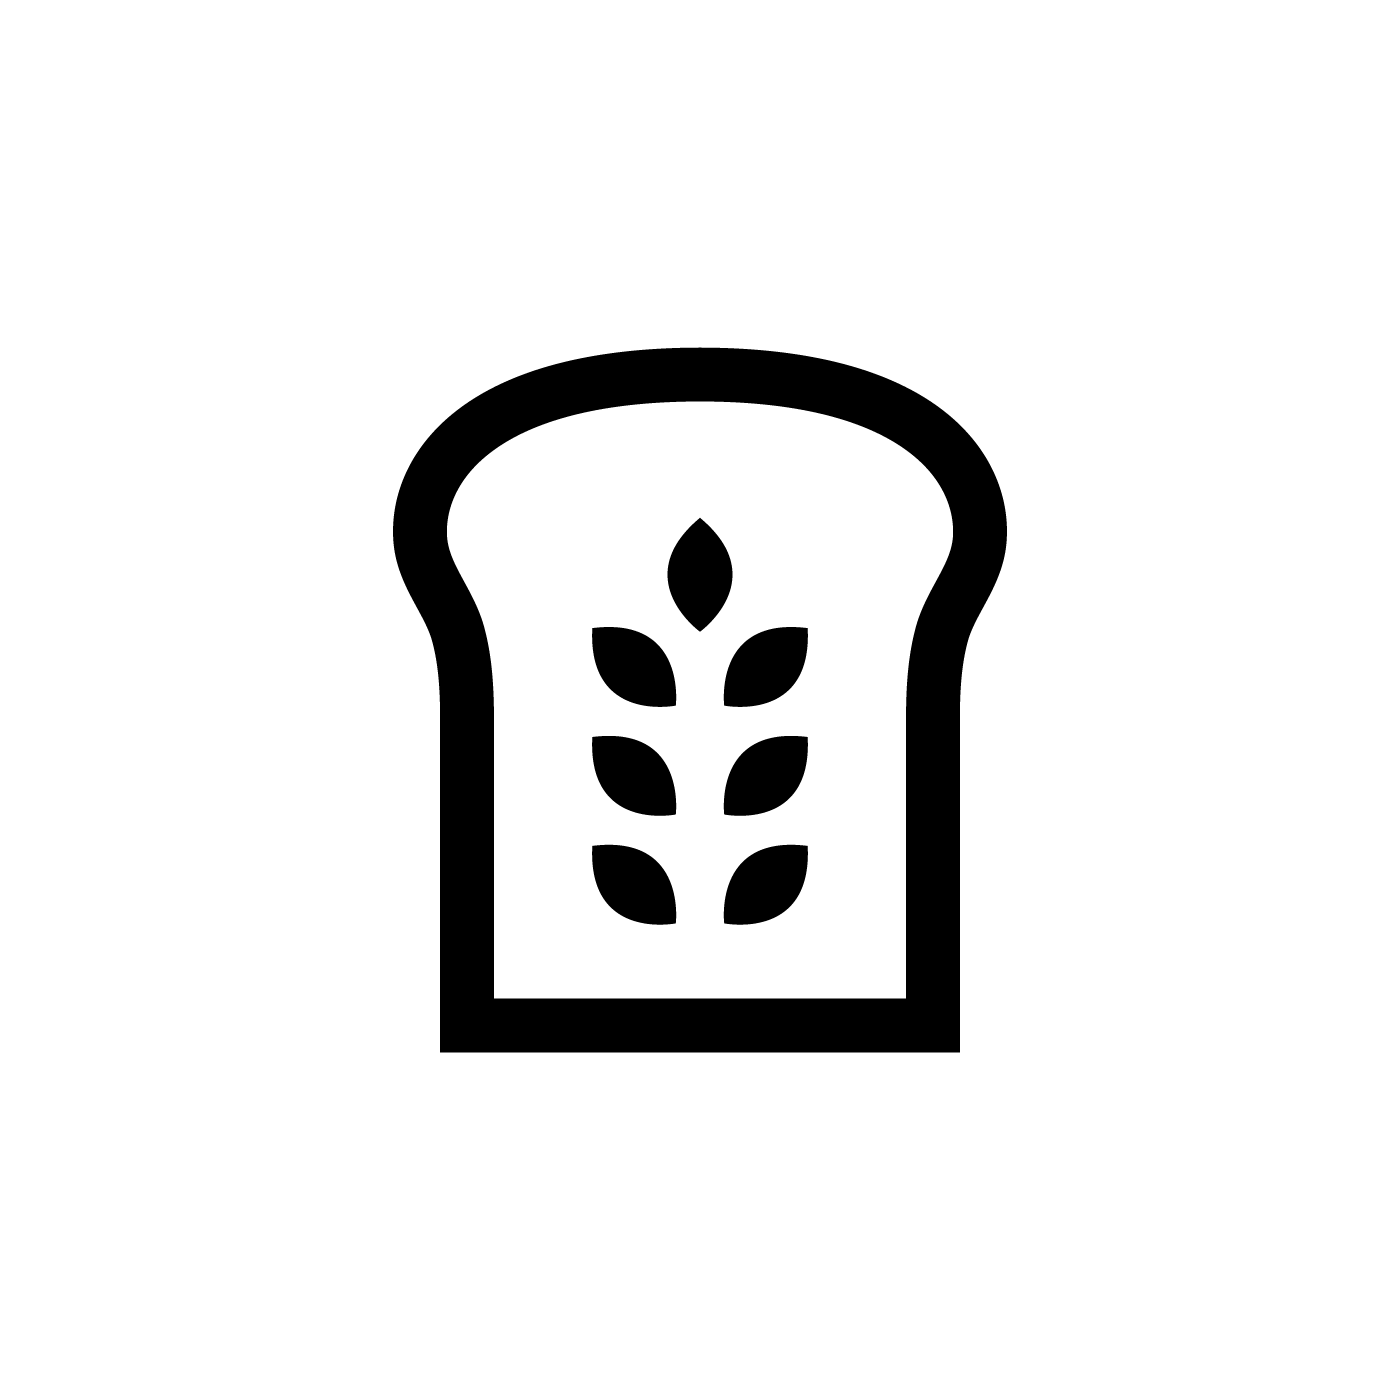 Black icon of a slice of bread with wheat leaves at its centre